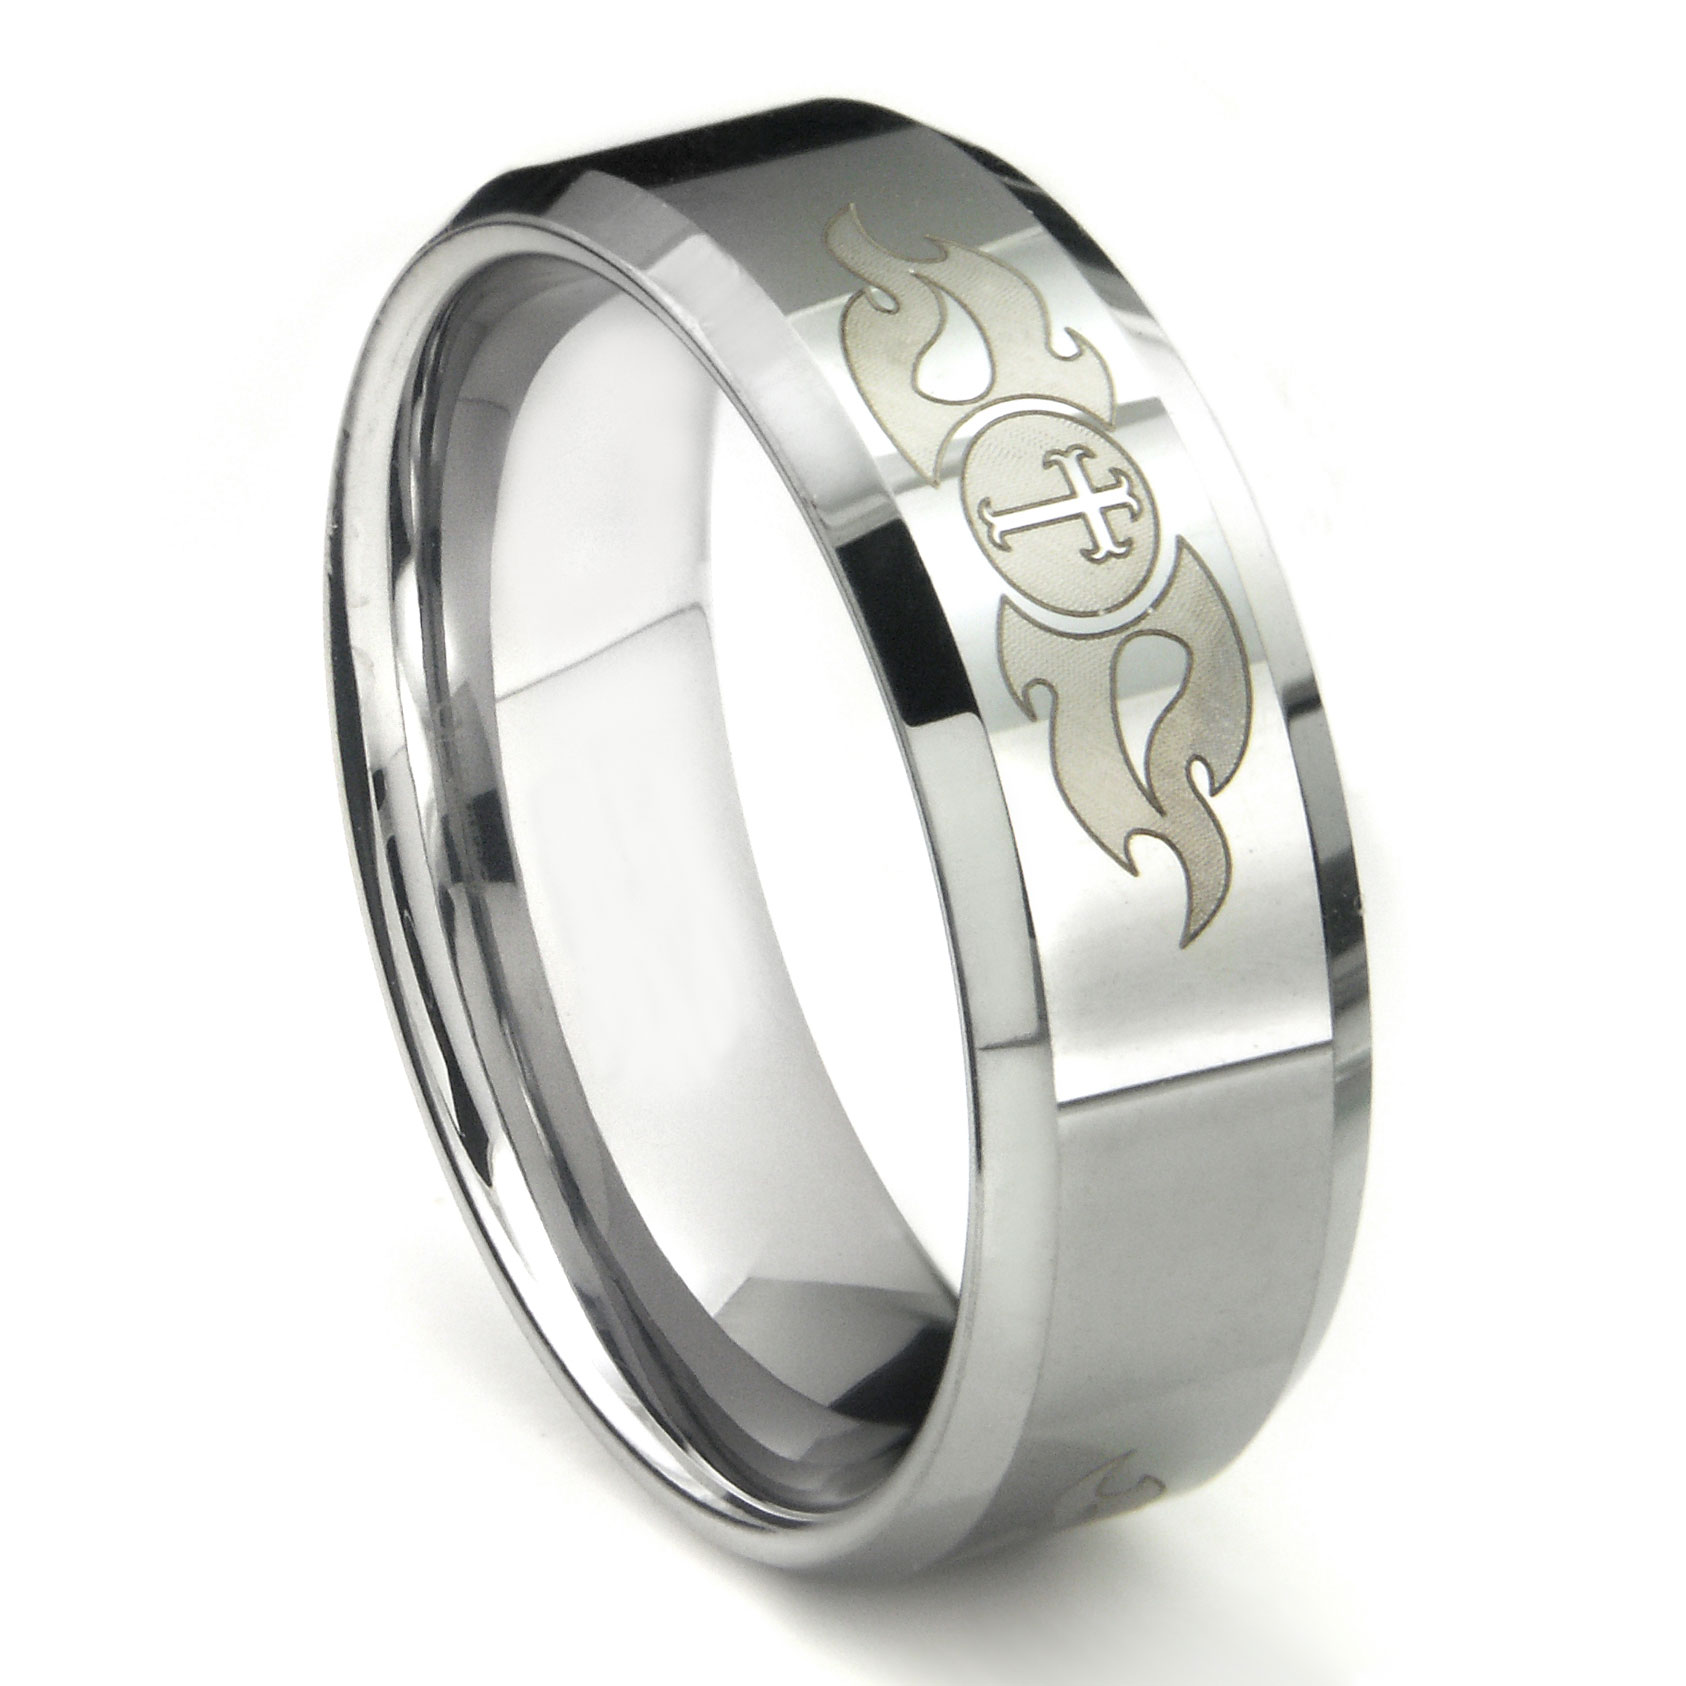 tungsten carbide laser engraved fiery cross wedding band ring With laser engraved wedding rings